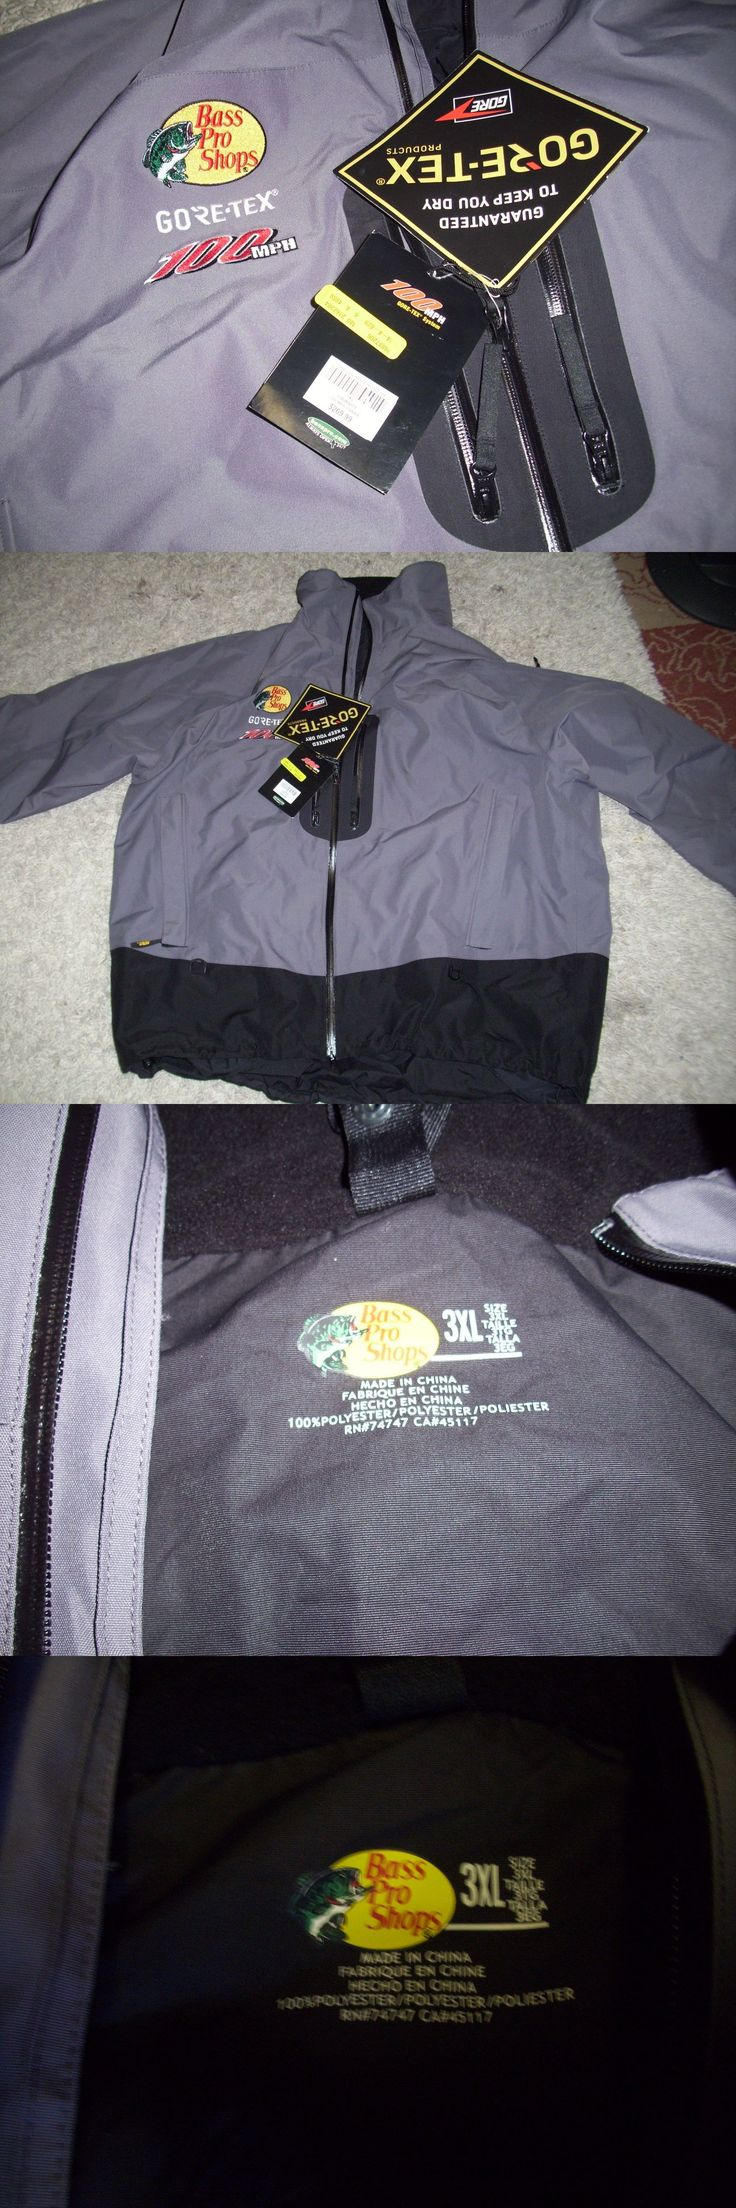 Jacket and Pants Sets 179981: New Bass Pro Shop 100Mph Gore-Tex System Parka Jacket 3Xl Granite $270 -> BUY IT NOW ONLY: $150 on eBay!